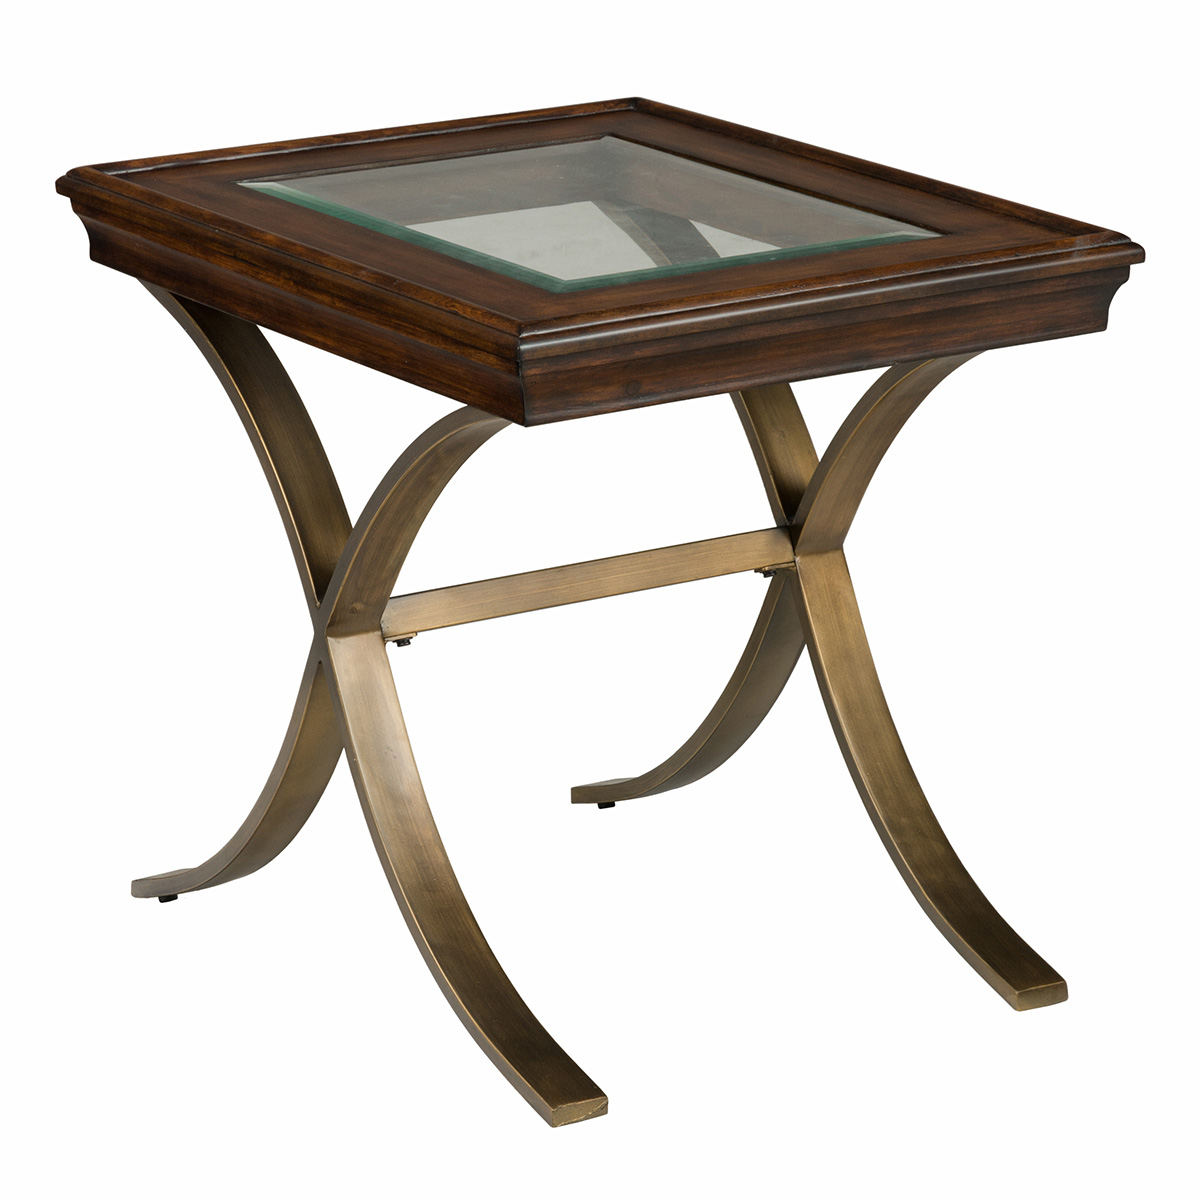 Surprising Ashland End Table W Chocolate Pine Glass Top On Curved Steel Legs By Jofran Machost Co Dining Chair Design Ideas Machostcouk